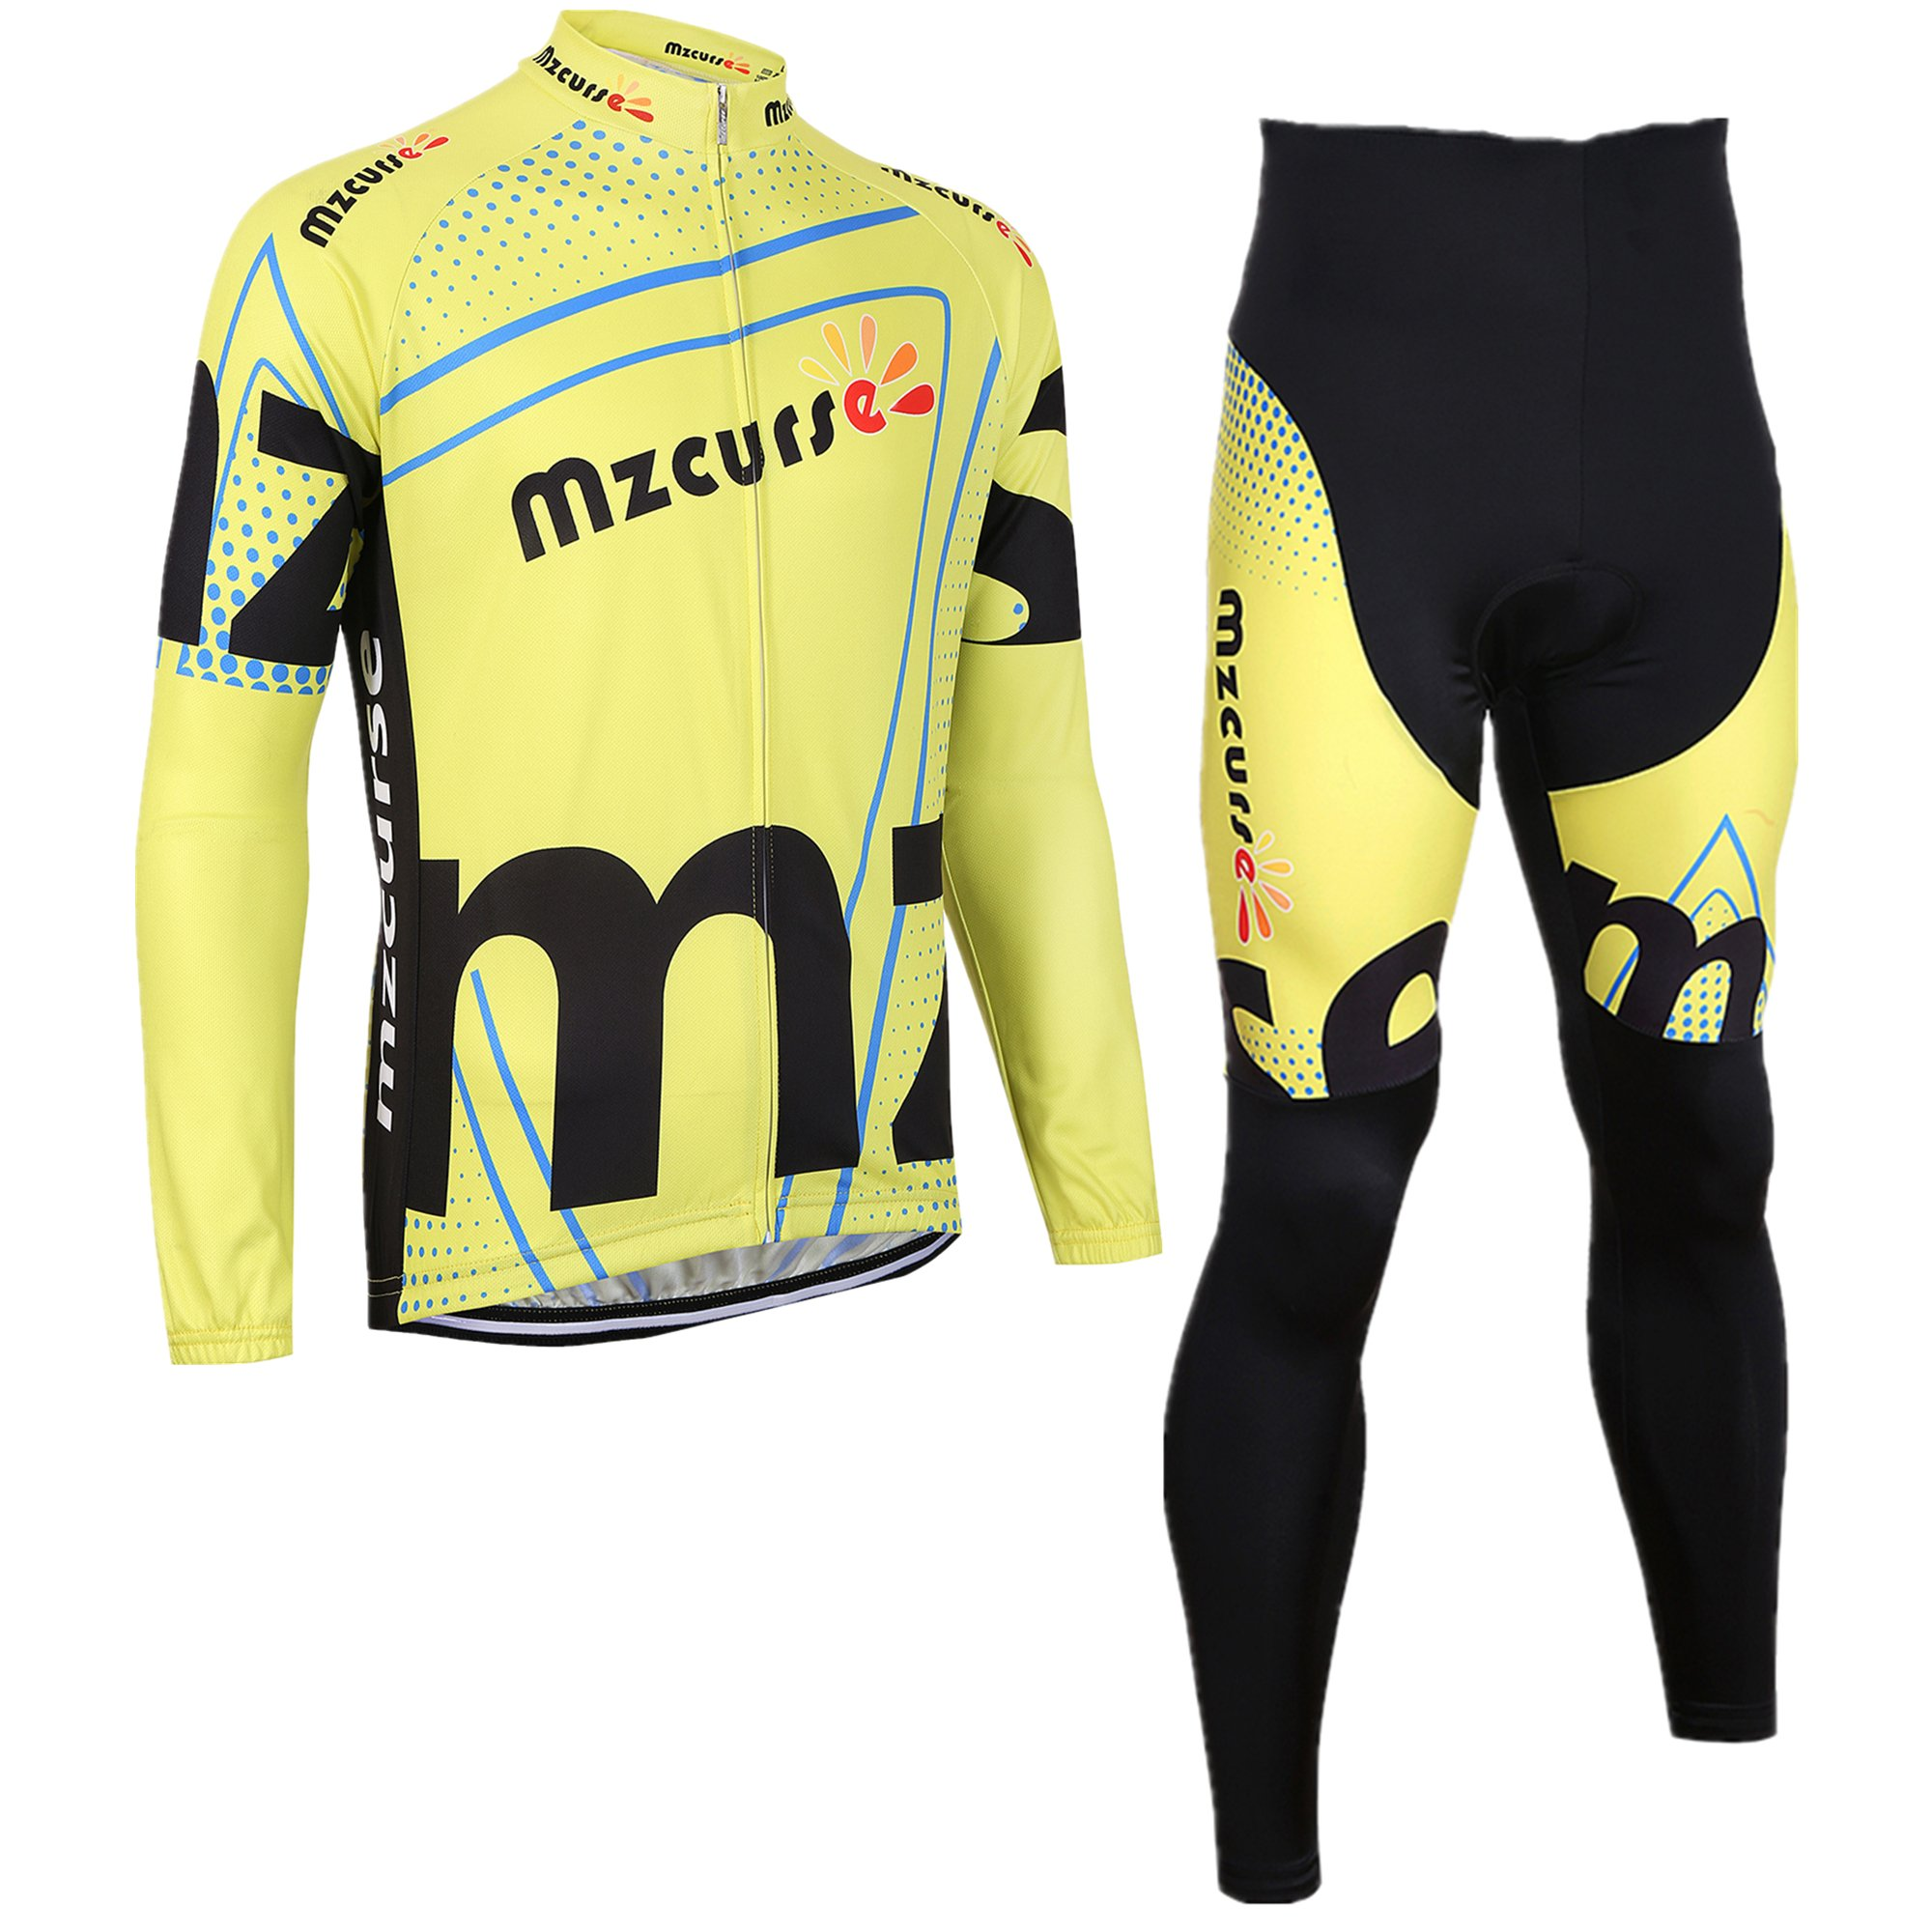 mzcurse Bicycle Bike Cycling Long Sleeve Jersey Jacket + Pants Shorts Set Skin Suits (Yellow, Small,please check the size chart)